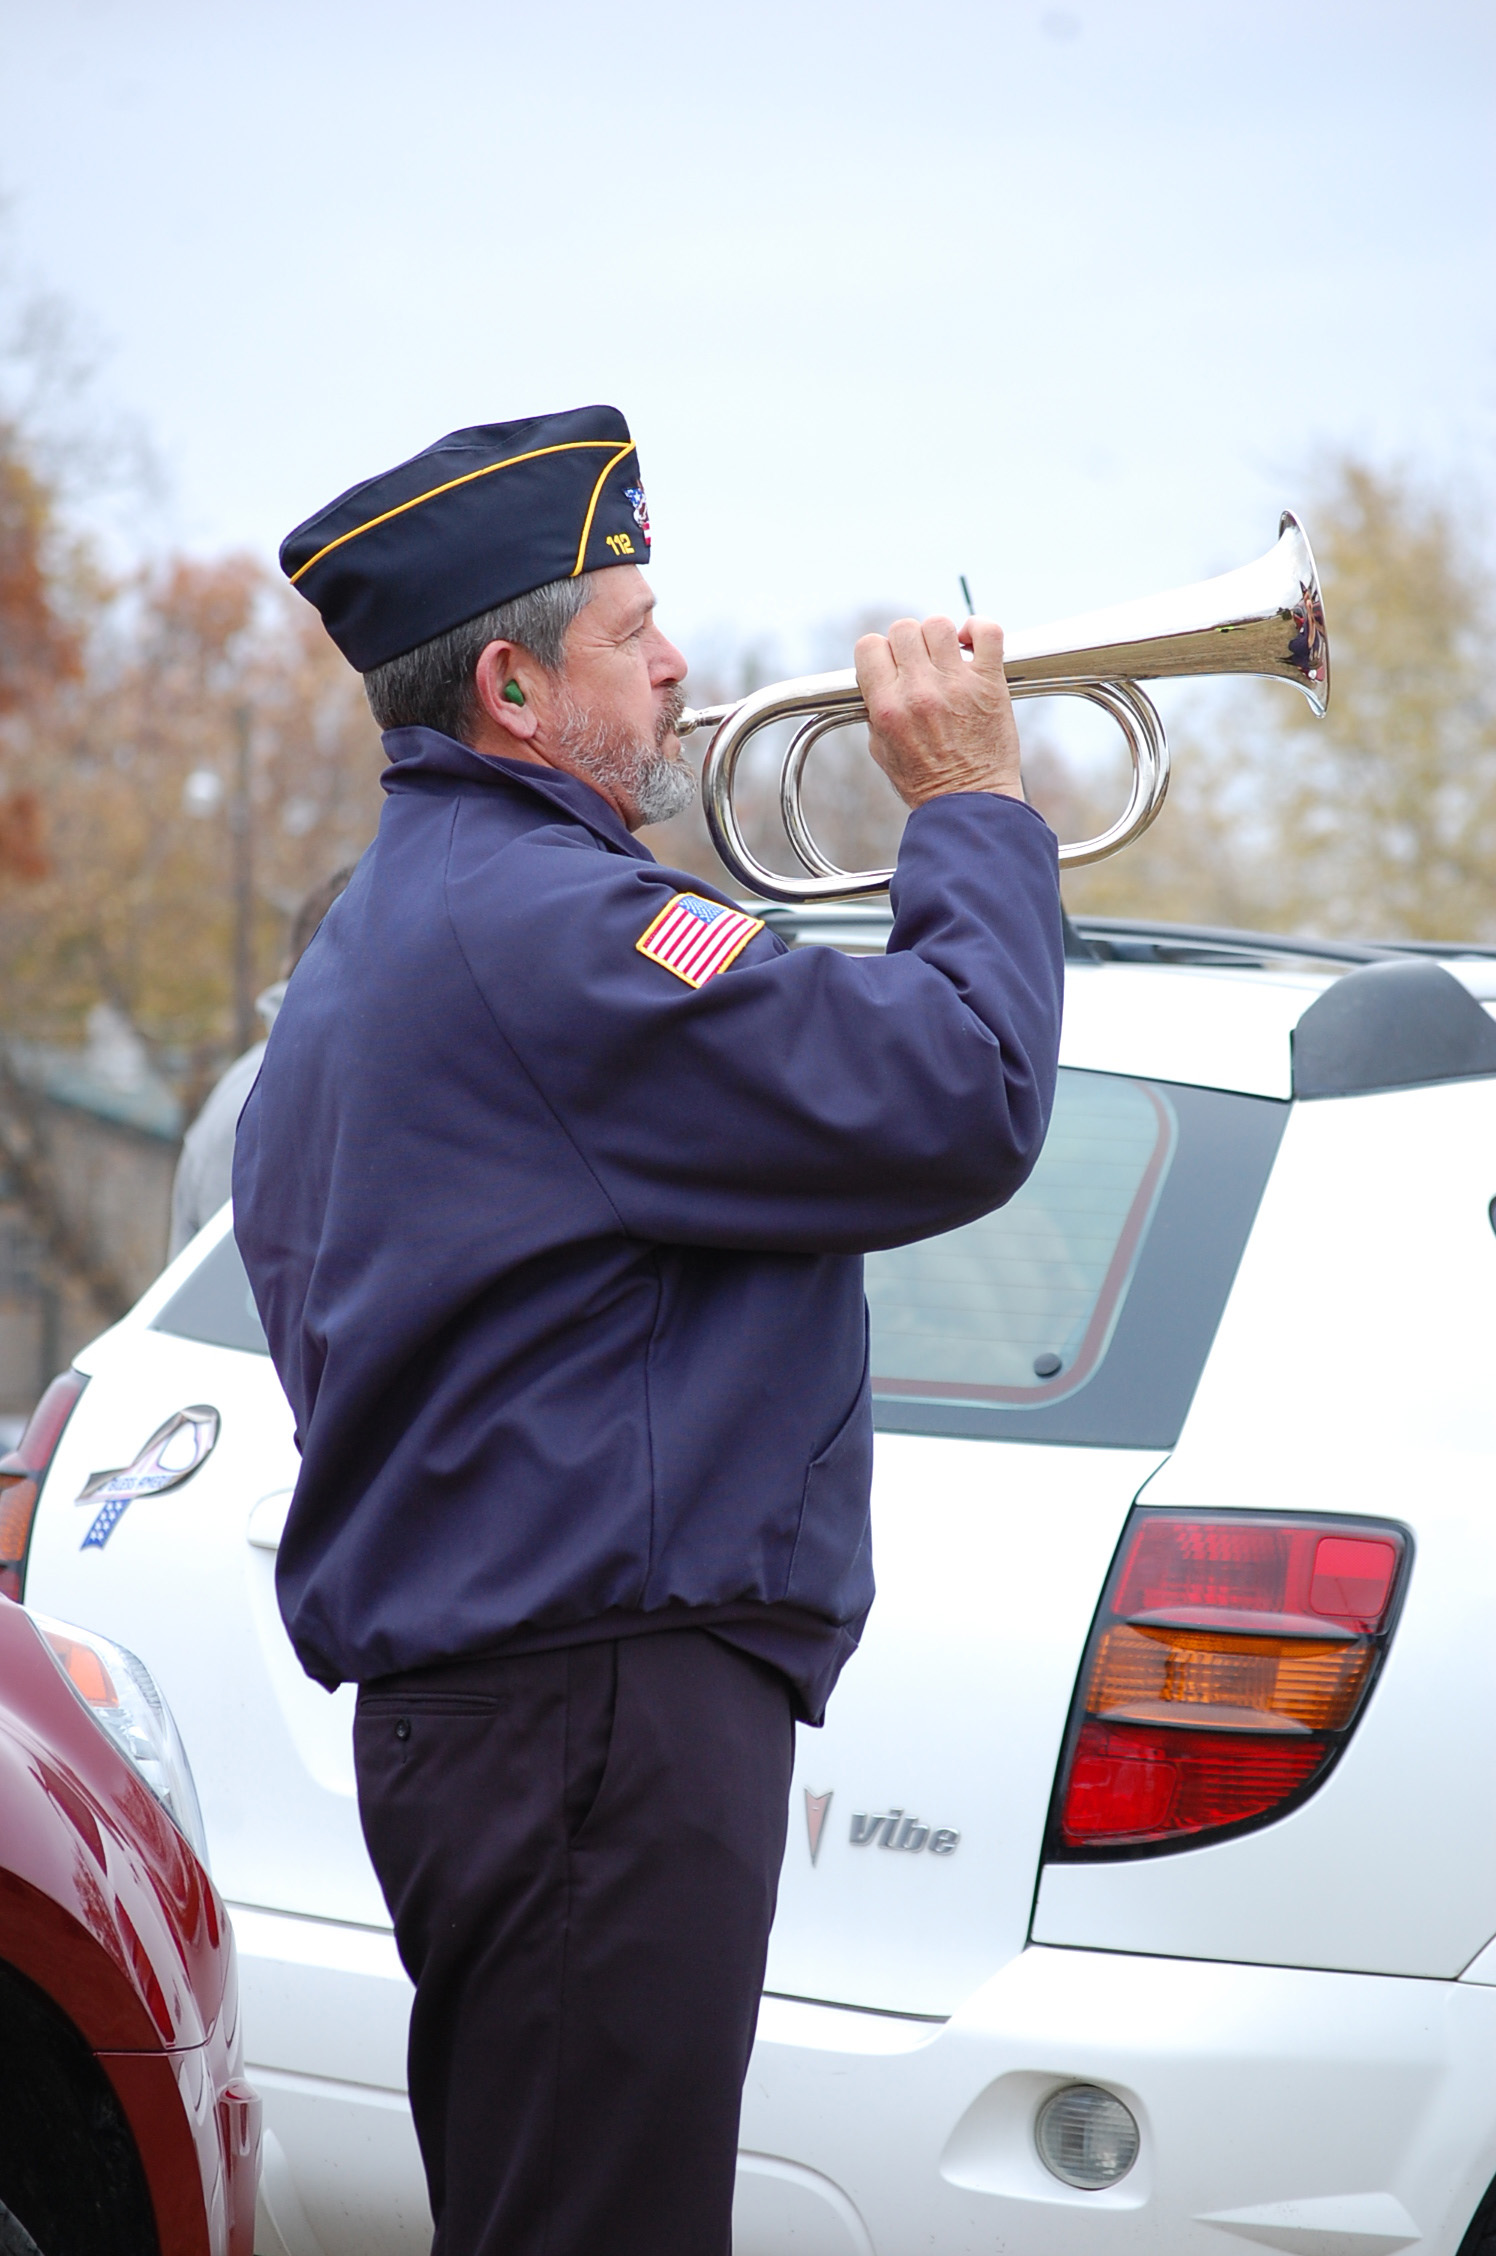 American Legion member Tom Bentley played Taps at the conclusion of the Veterans Day ceremony at the Ava Cemetery Tuesday.